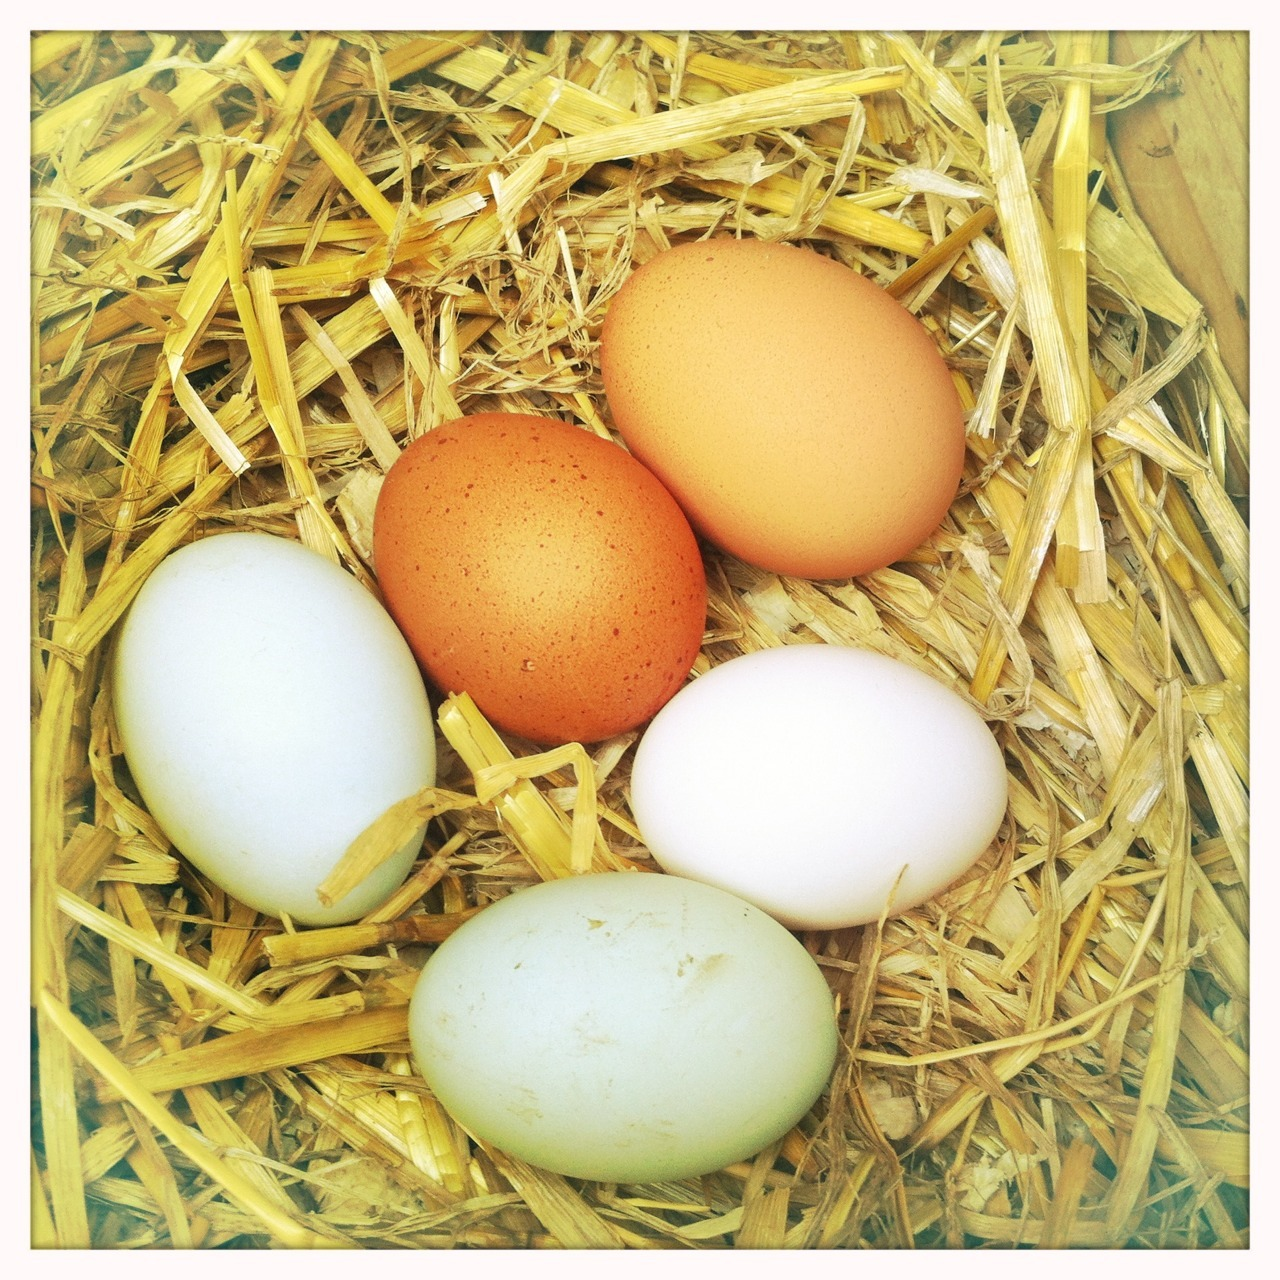 Despite the cold weather, as the days get longer, our chickens get more productive. Dottie and Doris, copper black hybrids who lay the brown eggs, are two years old and lay almost every day, year round. The other four are 18 months older and so are getting a bit middle aged in chicken terms so their production is slowing down. They are also rare breeds so lay less in the winter, if at all. Florrie is a black leghorn and lays white eggs, Betty and Ivy are cream legbars who lay pale blue eggs and Olive is a very rare Wernlas who lays greenish eggs. Now that the equinox has passed, they are all in lay but because of their age, we rarely get six egg days and even five egg days like this one are getting less common. We still have plenty for us plus the odd half dozen to sell, trade or give away so I'm not concerned. Keeping chickens has proved to be a great pleasure in my life and I love seeing them pottering round the garden and hearing their comforting sounds. When the time comes that we start to lose our ladies I think I will replace them with a mix of hybrids and rare breeds because it's important to support these older breeds. I don't mind having less eggs in the winter, it's all part of the rhythm of the year. And anyway, who wouldn't want to collect a clutch of eggs as multi coloured and beautiful as these?